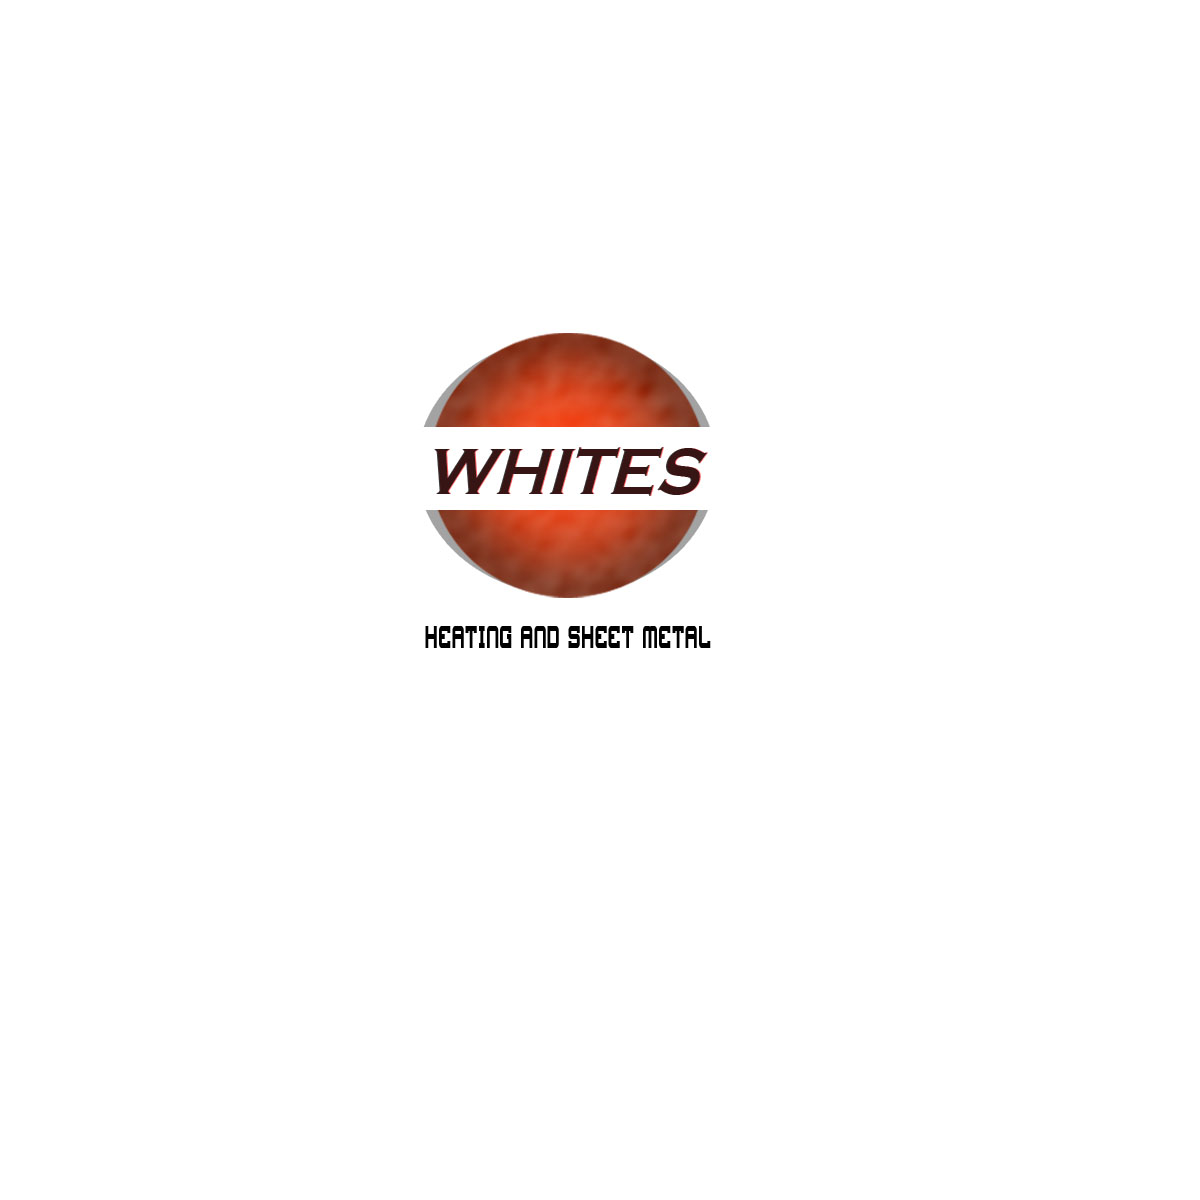 Logo Design by Moag - Entry No. 122 in the Logo Design Contest Imaginative Logo Design for White's Heating and Sheet Metal.